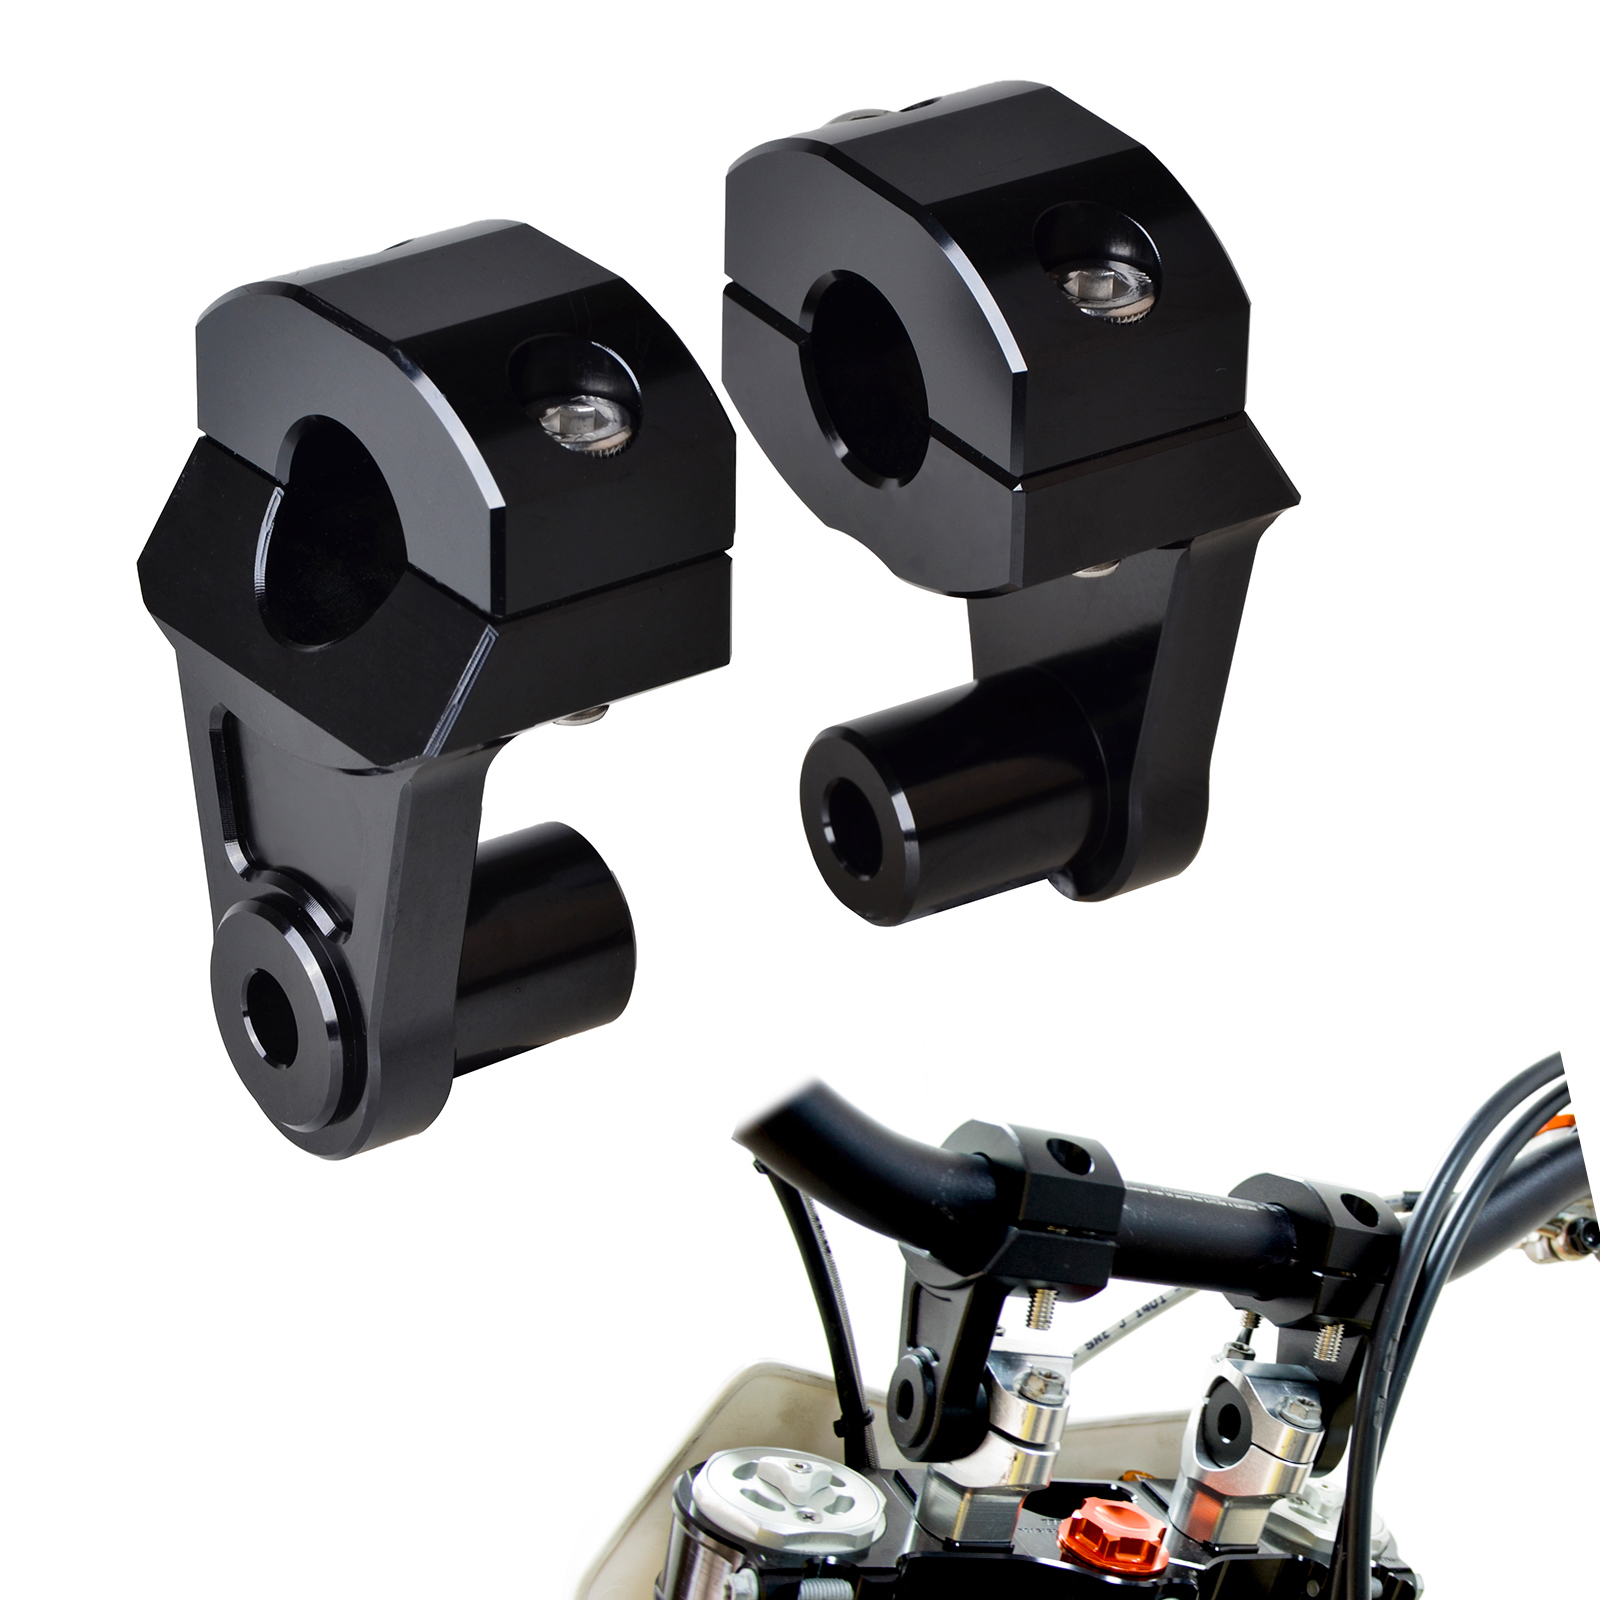 Motorcycle 28mm 1-1/8 Pivoting Handlebar Riser Handle Bar Clamps For KTM 690 990 Adventure Triumph Tiger 800 1200 XT1200Z худи print bar adventure fiction